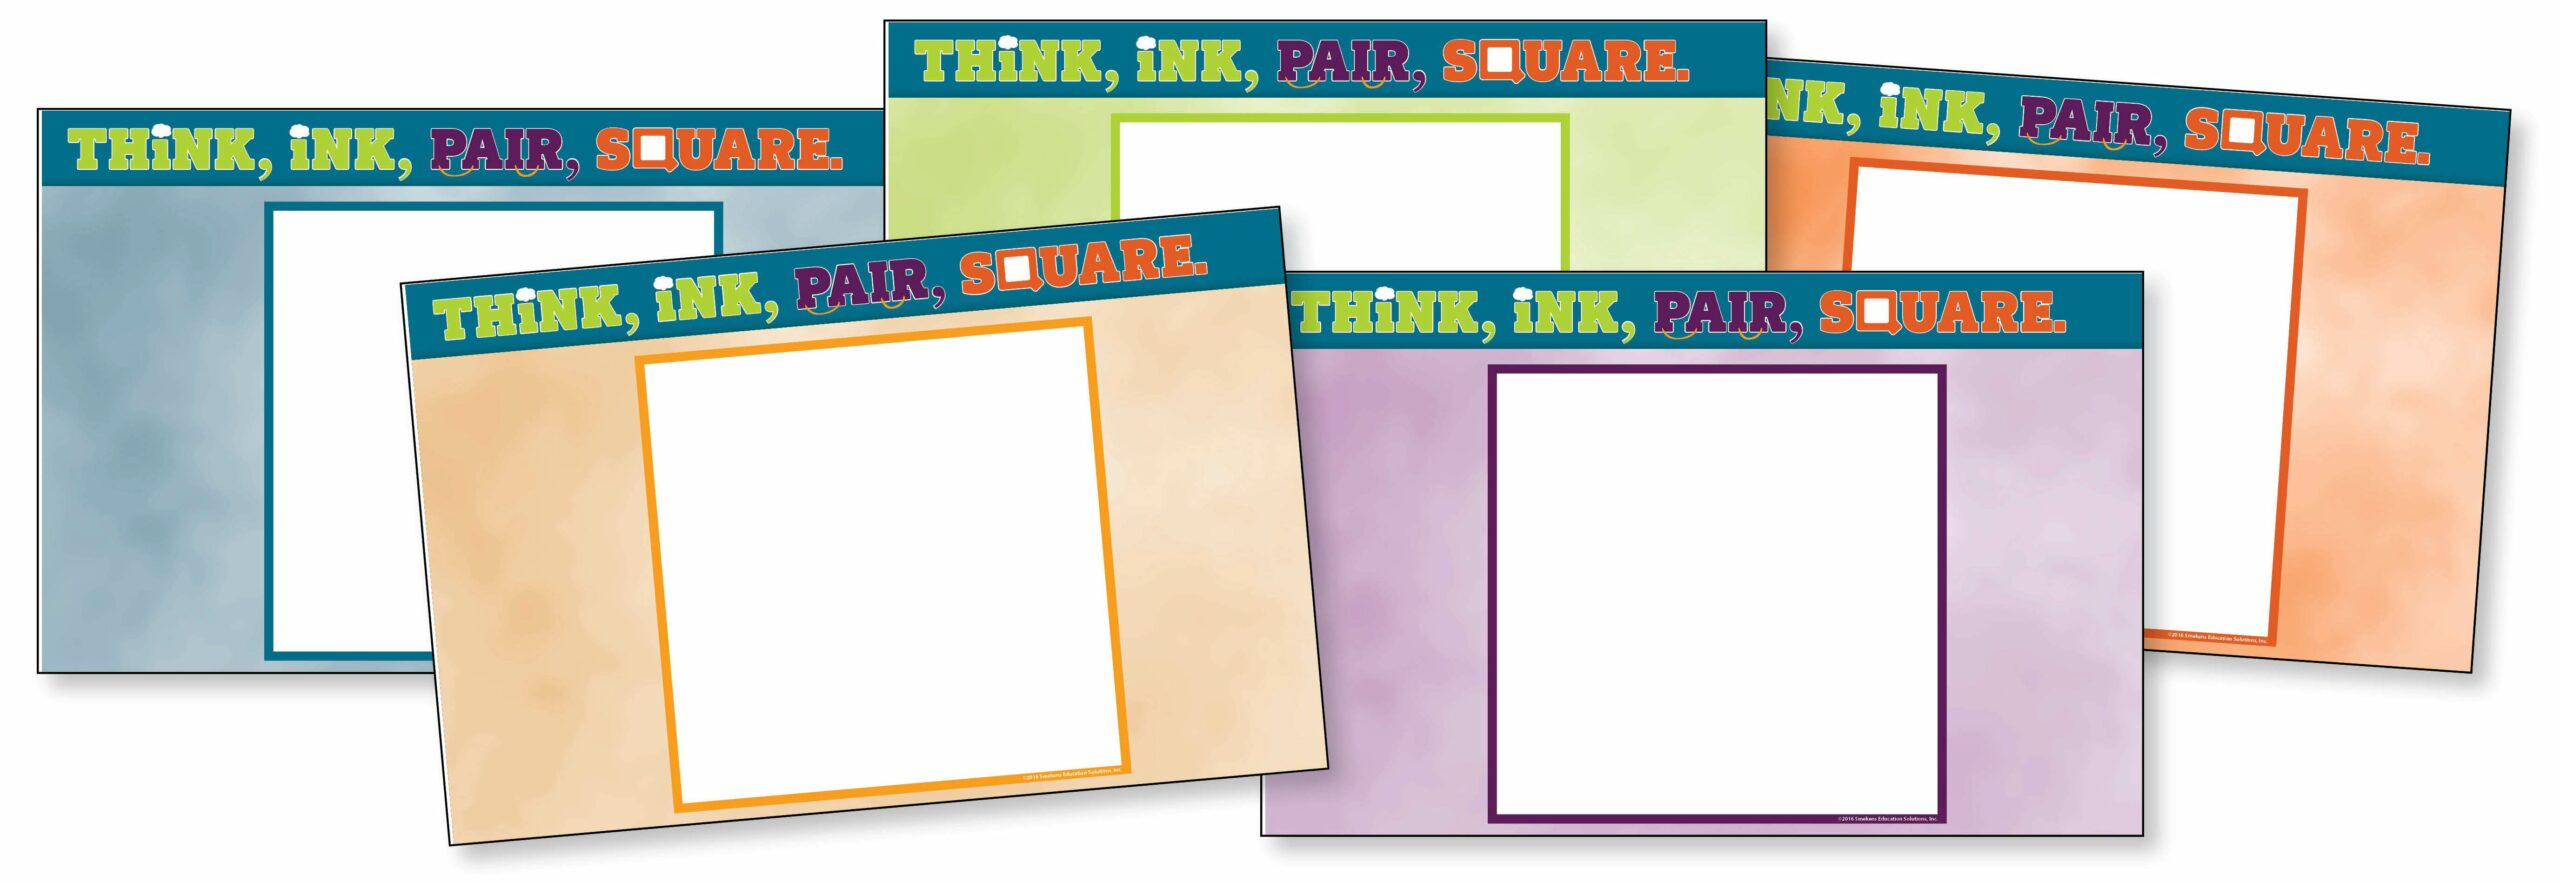 Think, Ink, Pair, Square placemats